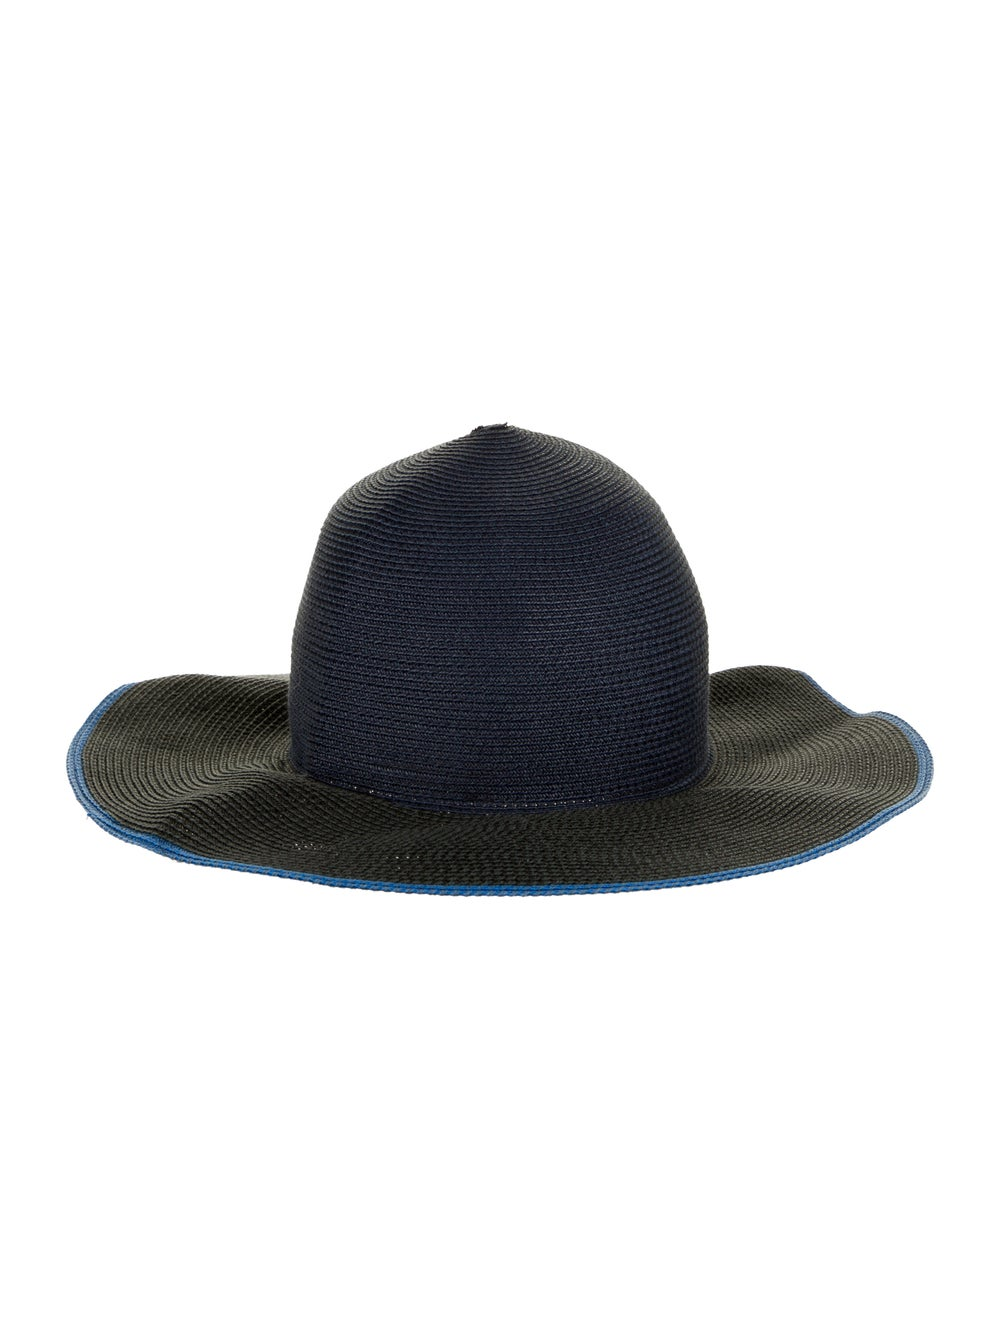 Rag & Bone Straw Wide-Brim Hat navy - image 2